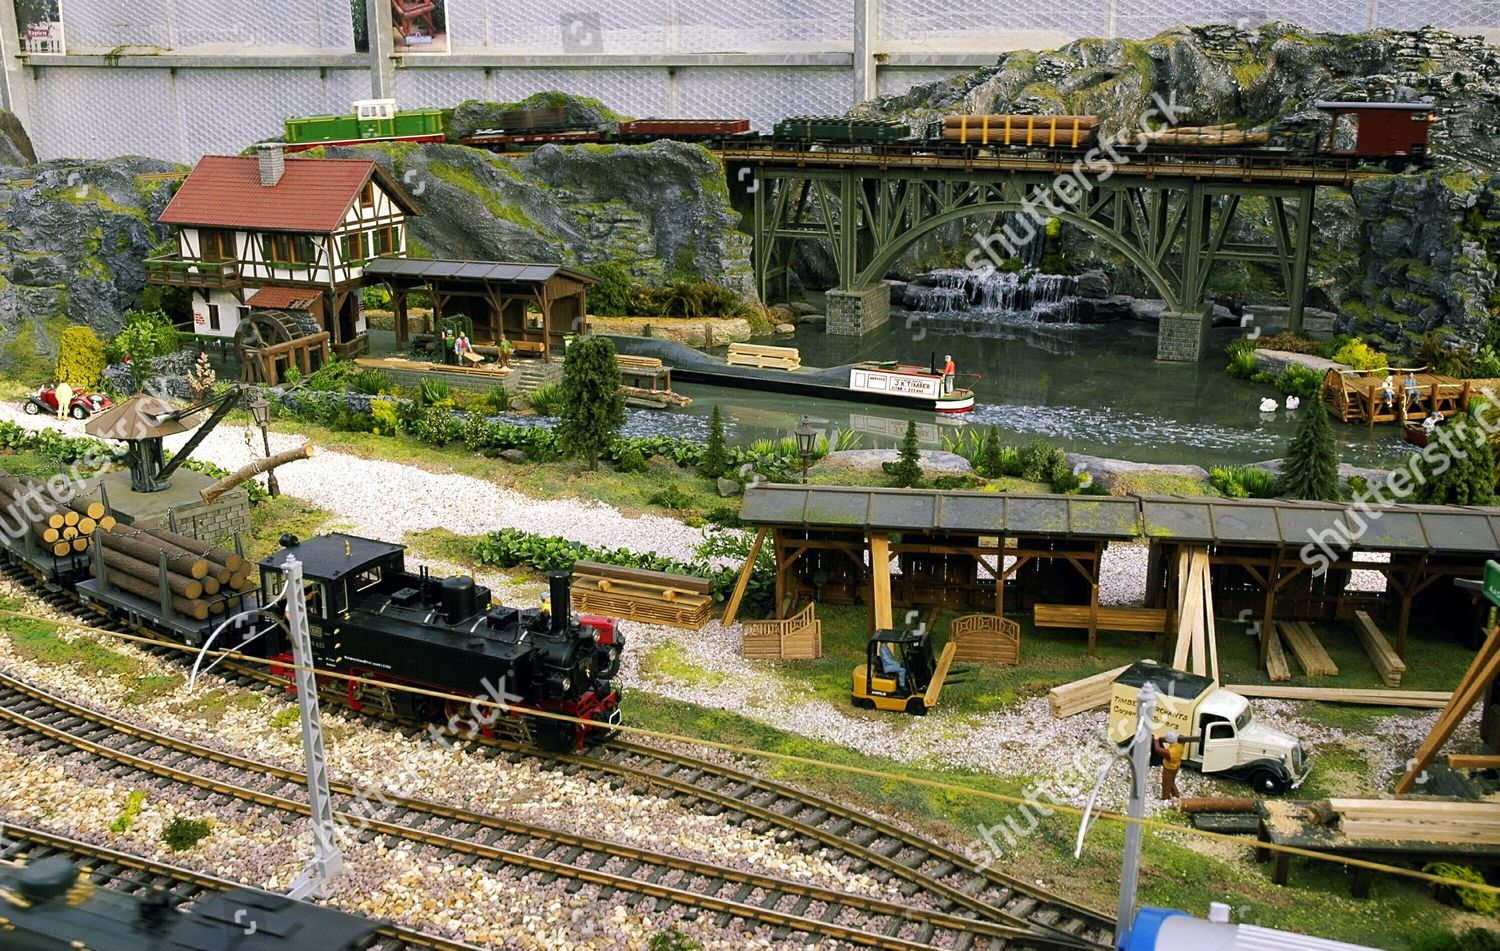 G Scale model railway layout Editorial Stock Photo - Stock